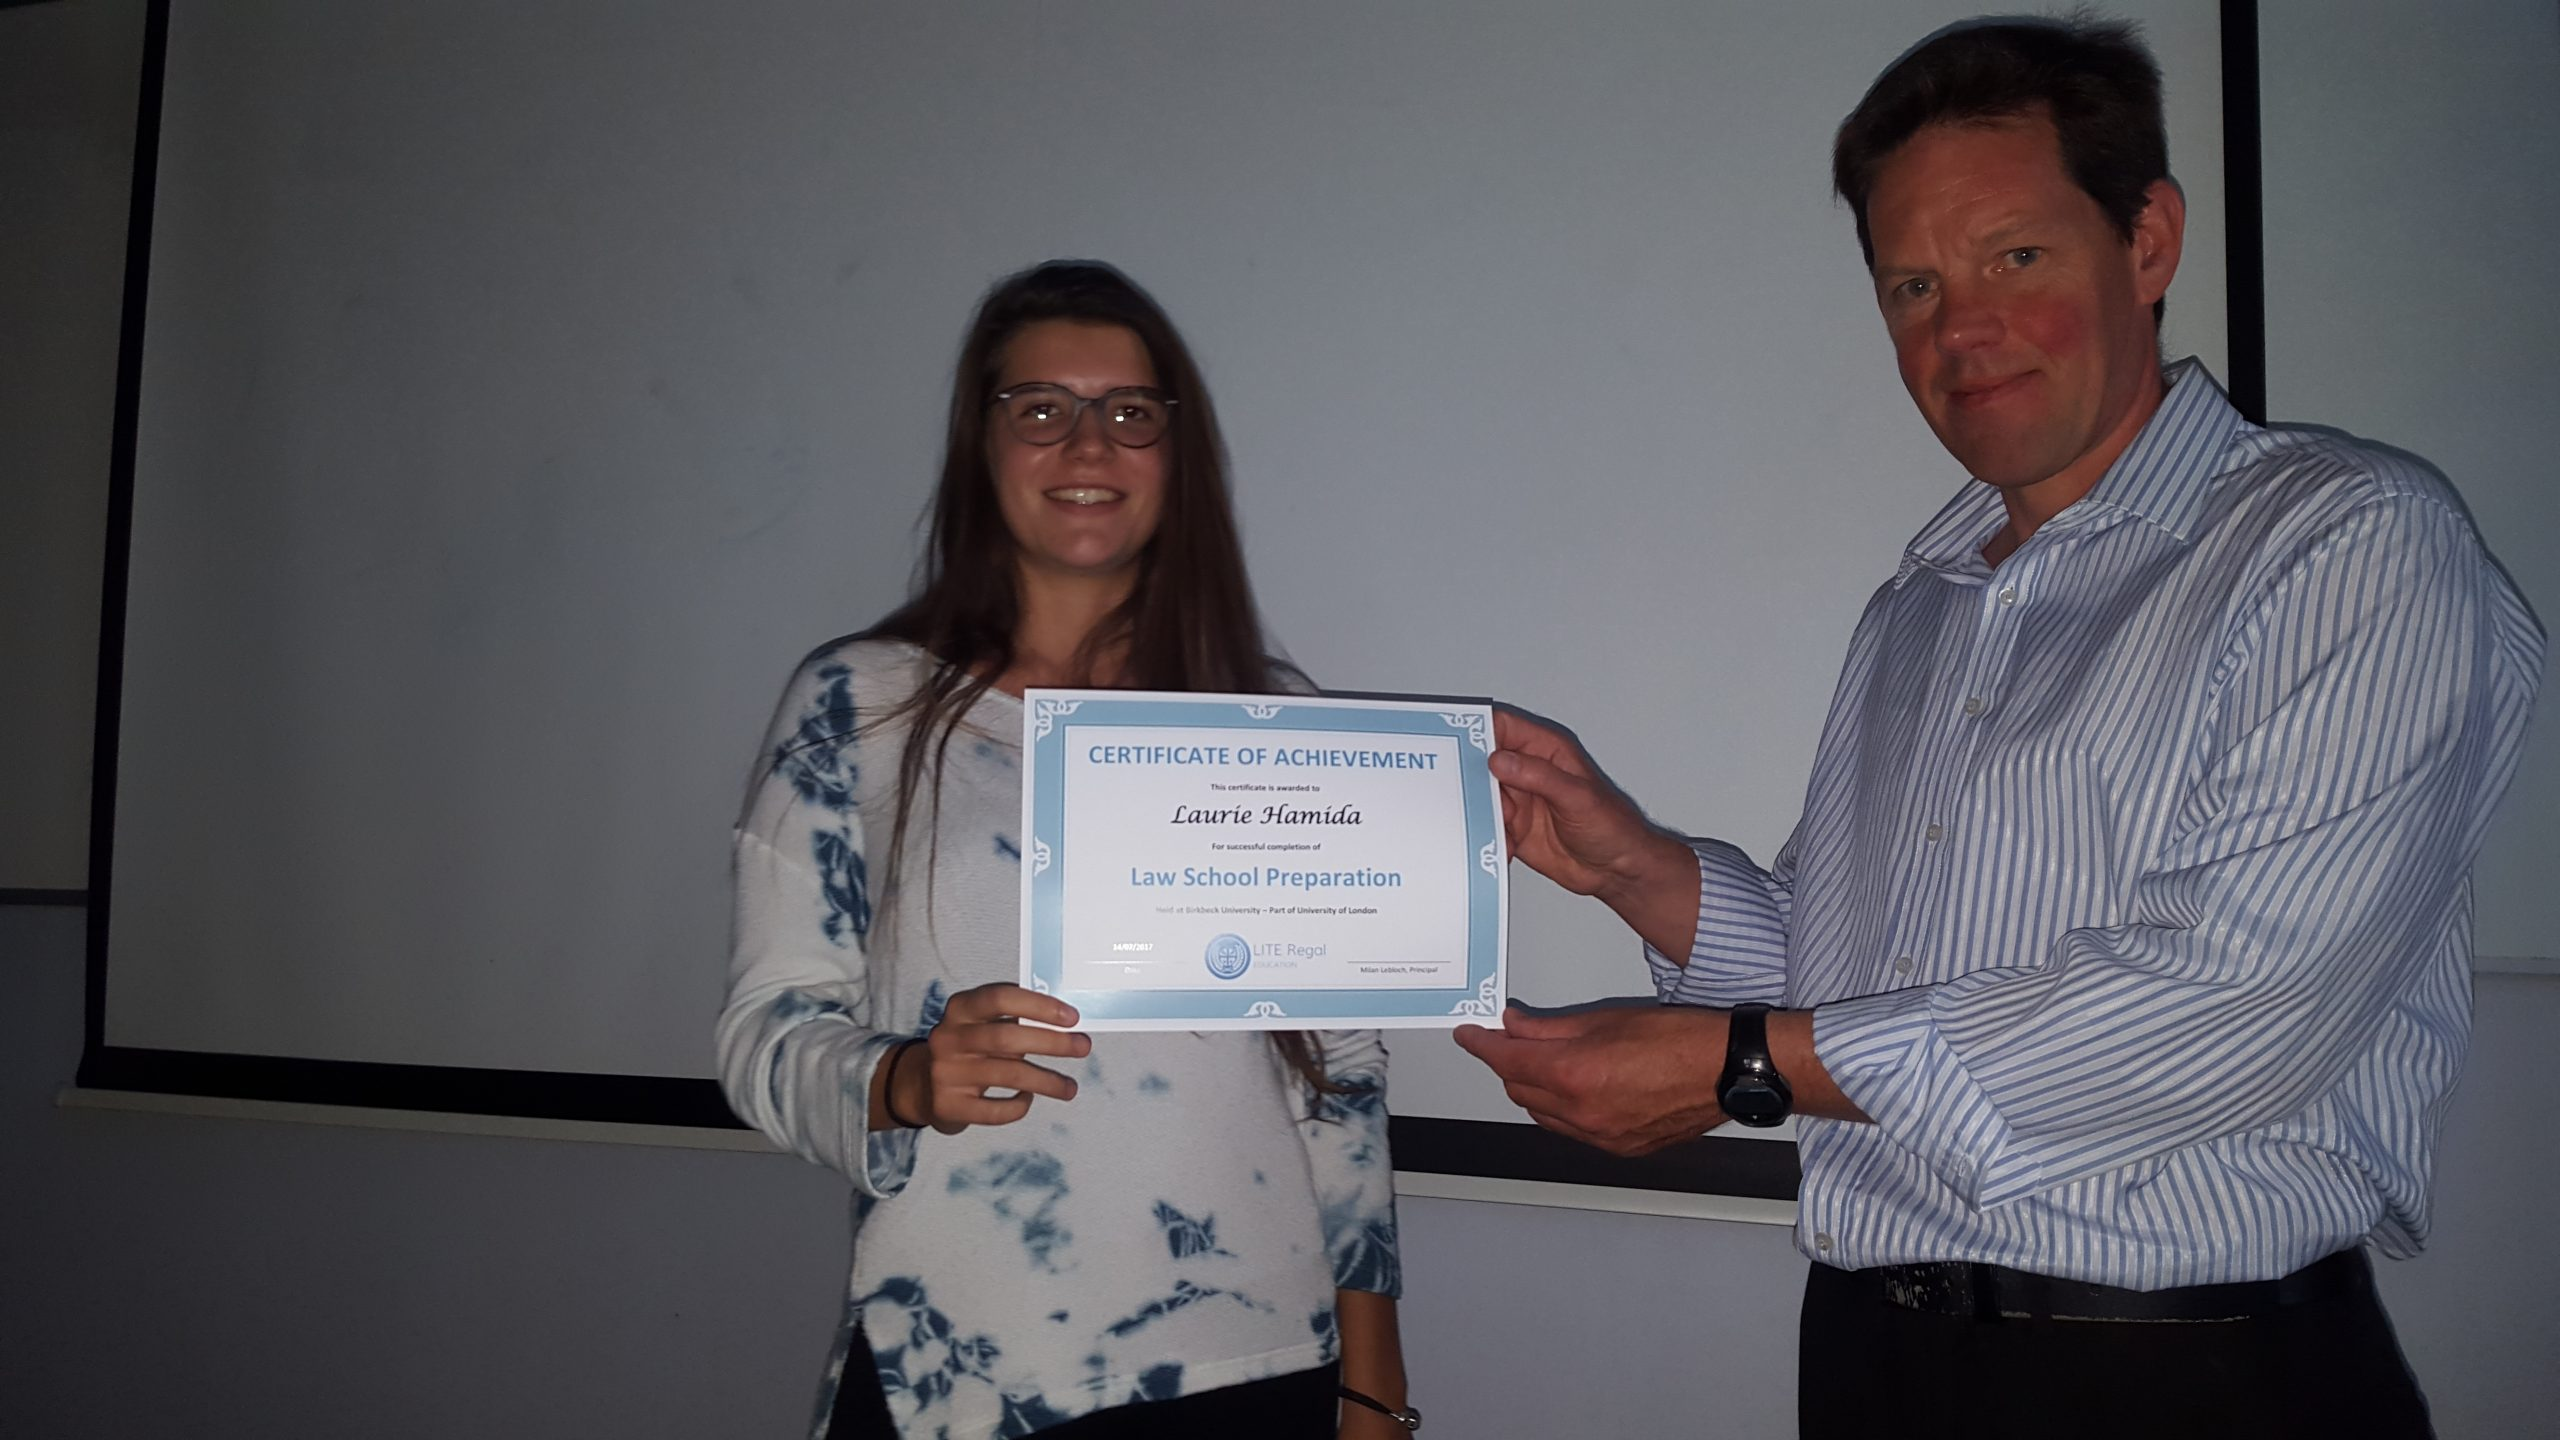 Lite Regal Summer Law Course Student with certificate